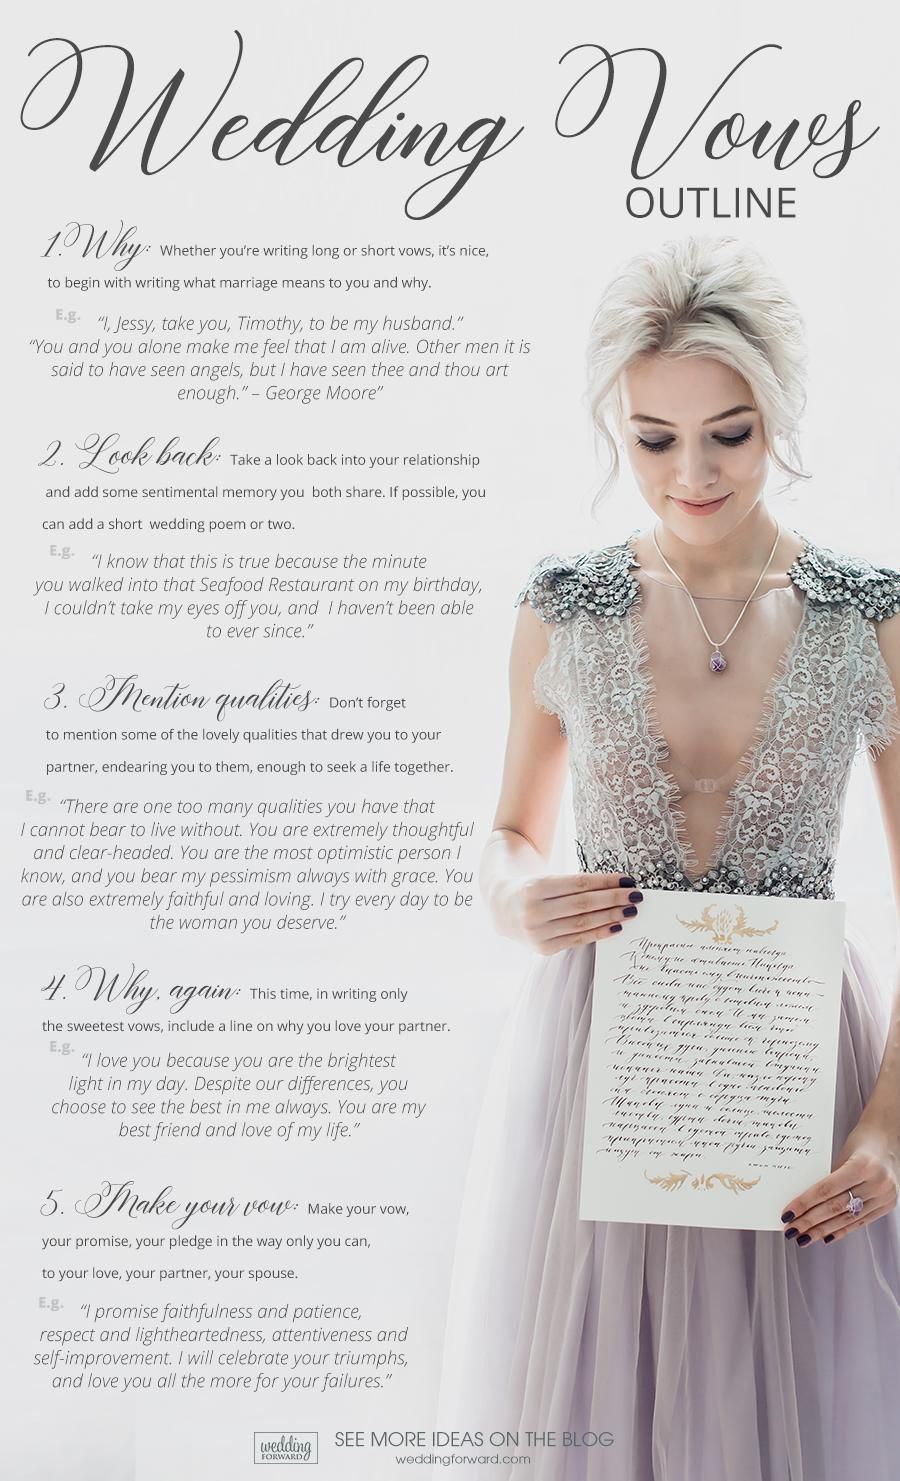 59 Wedding Vows For Her: Examples And Outline #ceremonyideas